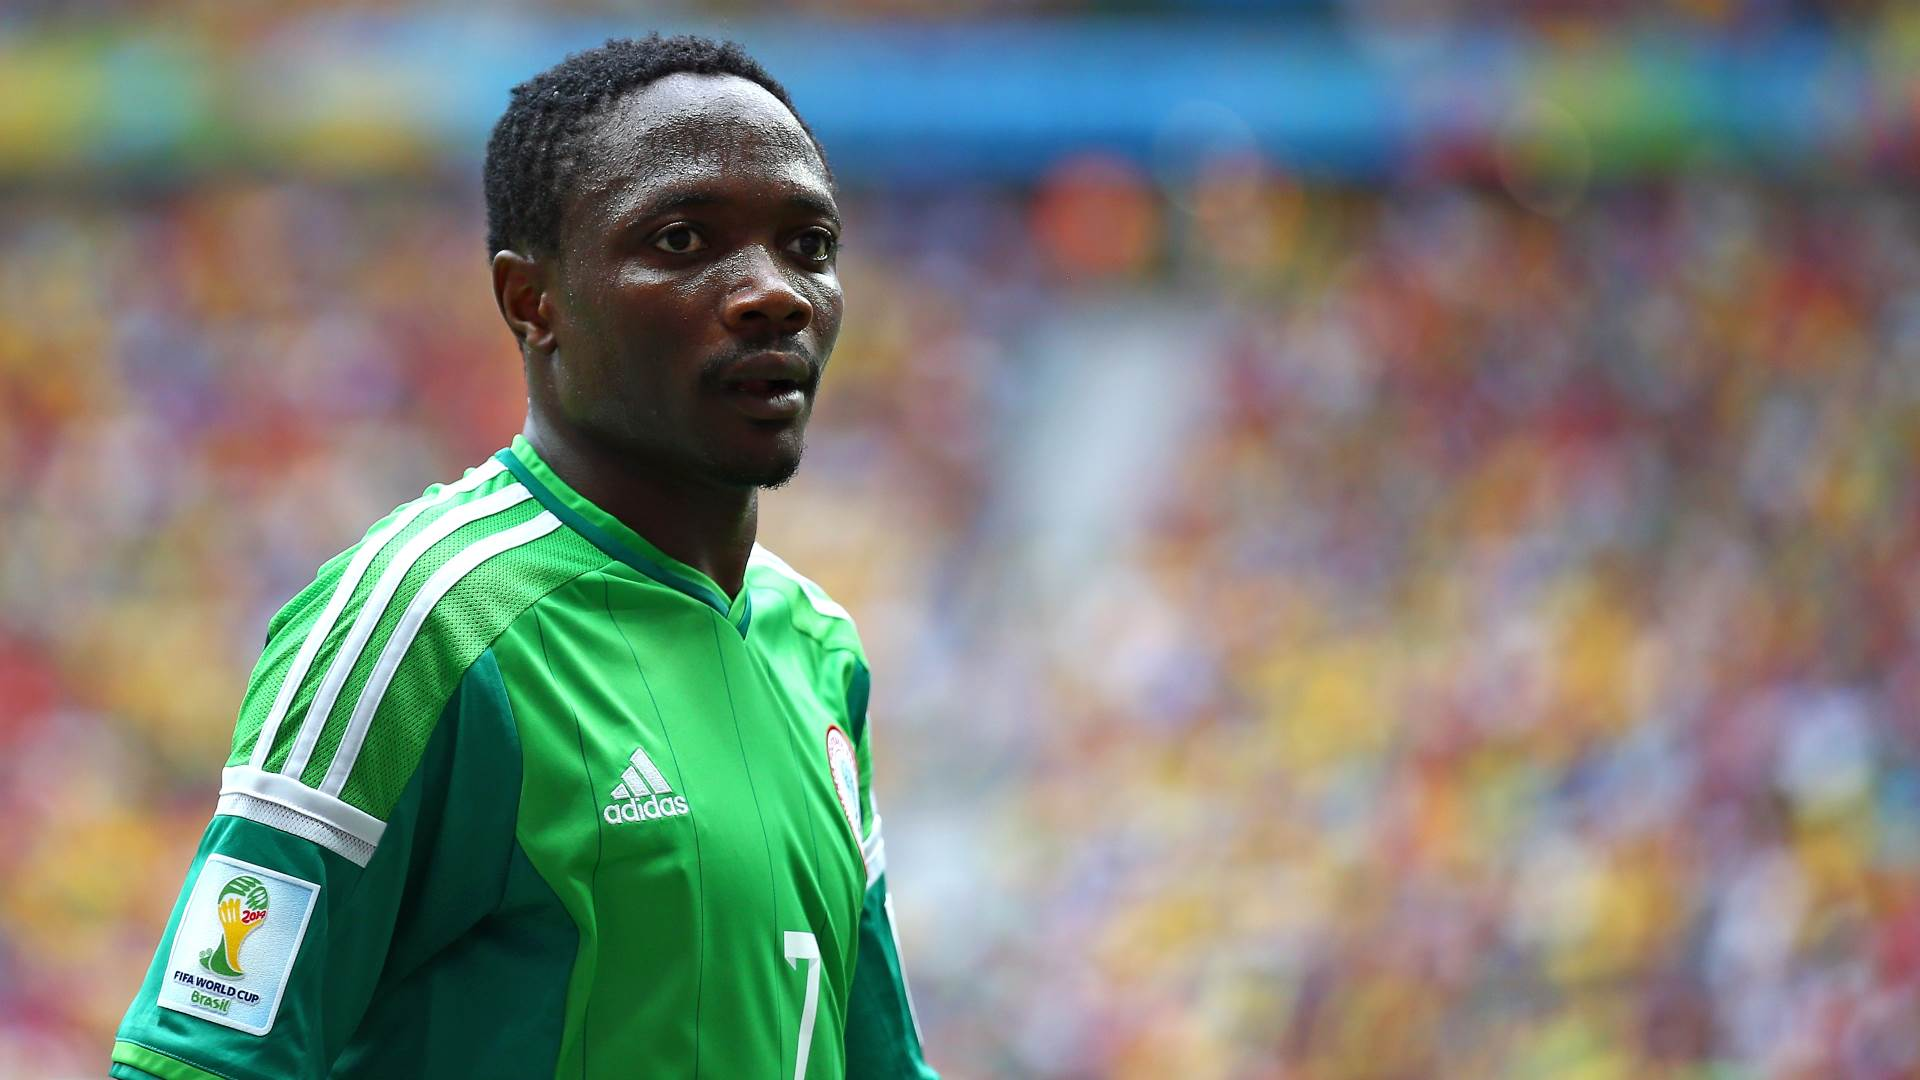 Retrospective: Ahmed Musa vs Argentina at the 2014 World Cup